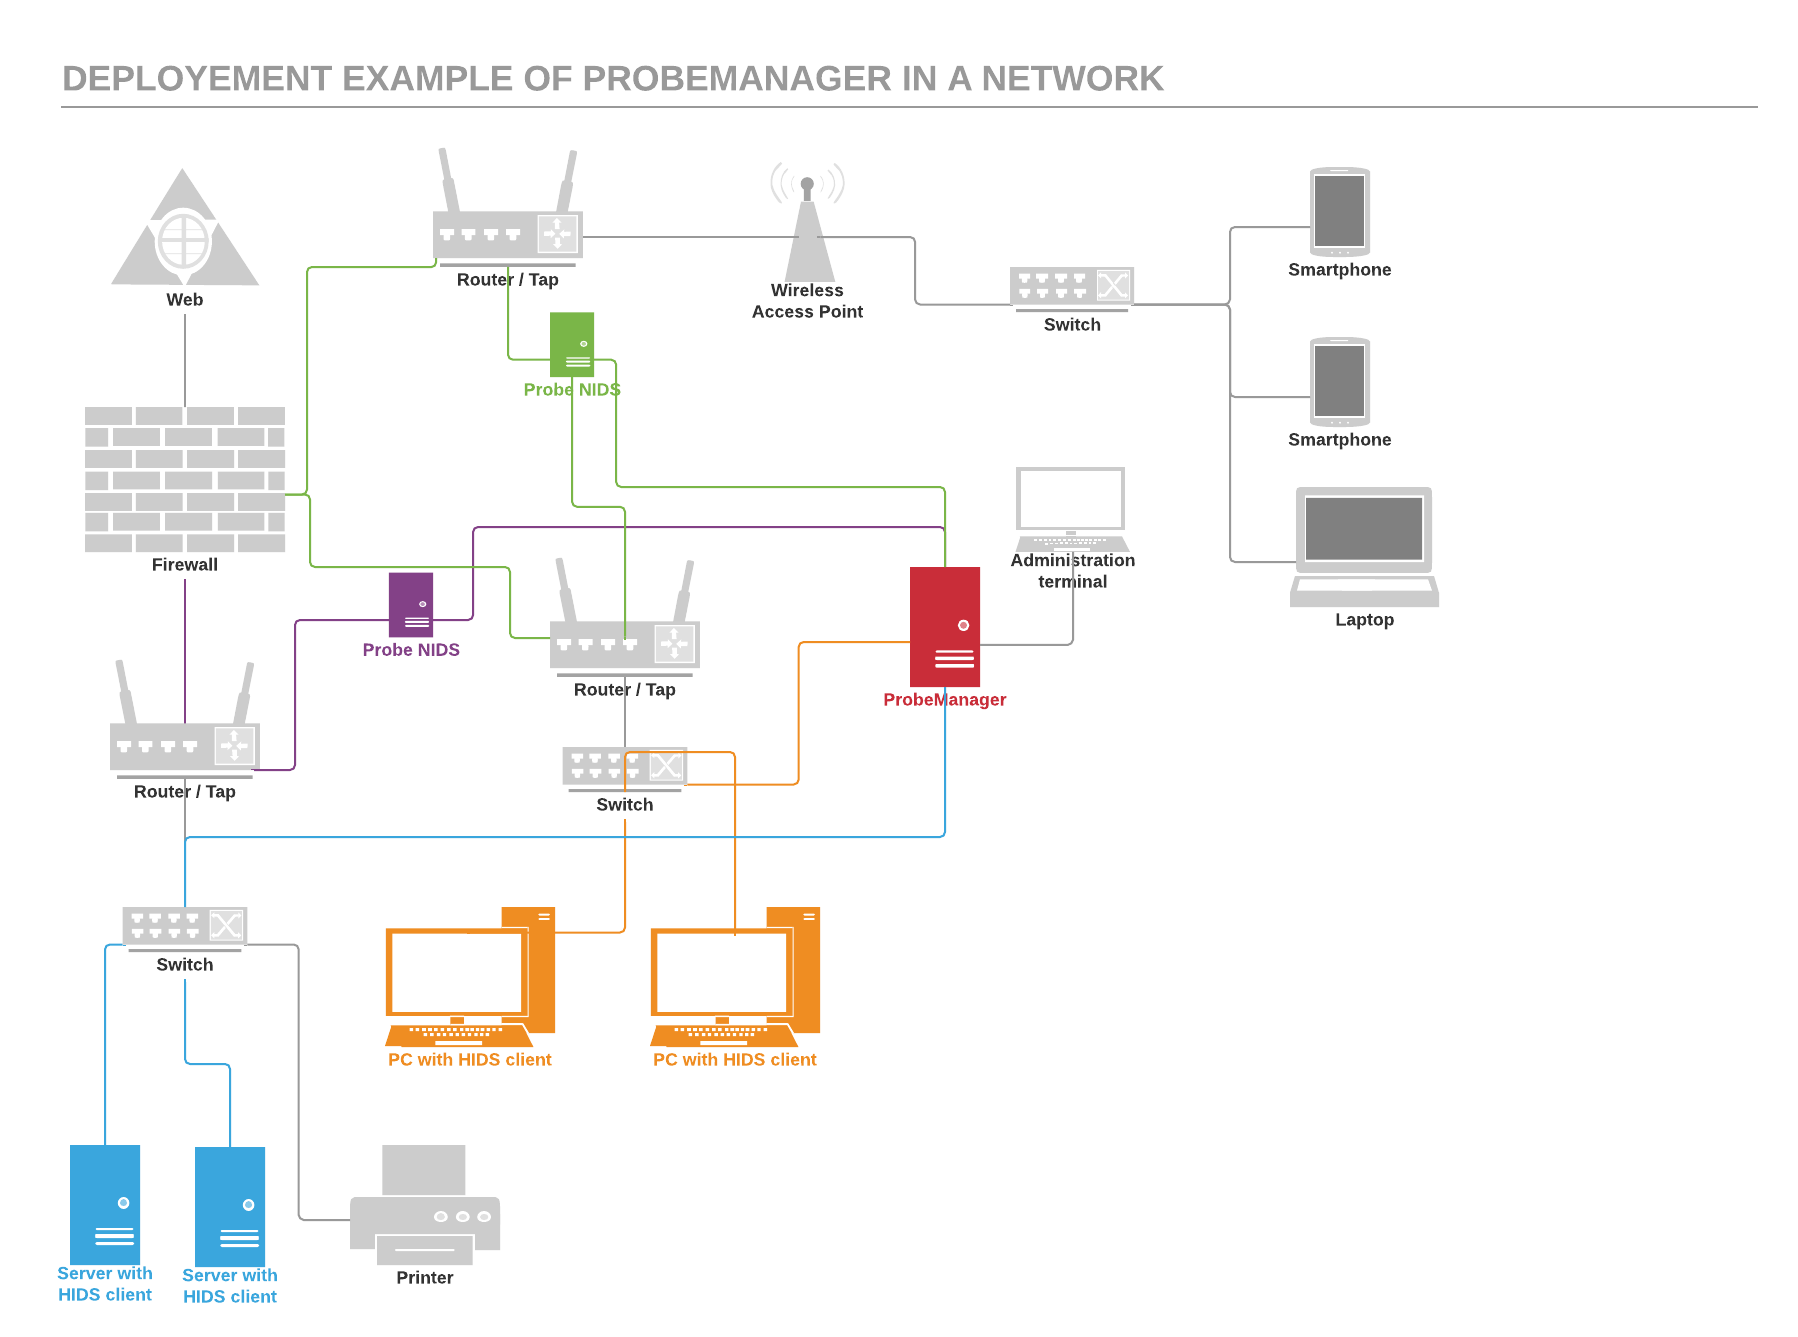 Deployement example of Probemanager in a network